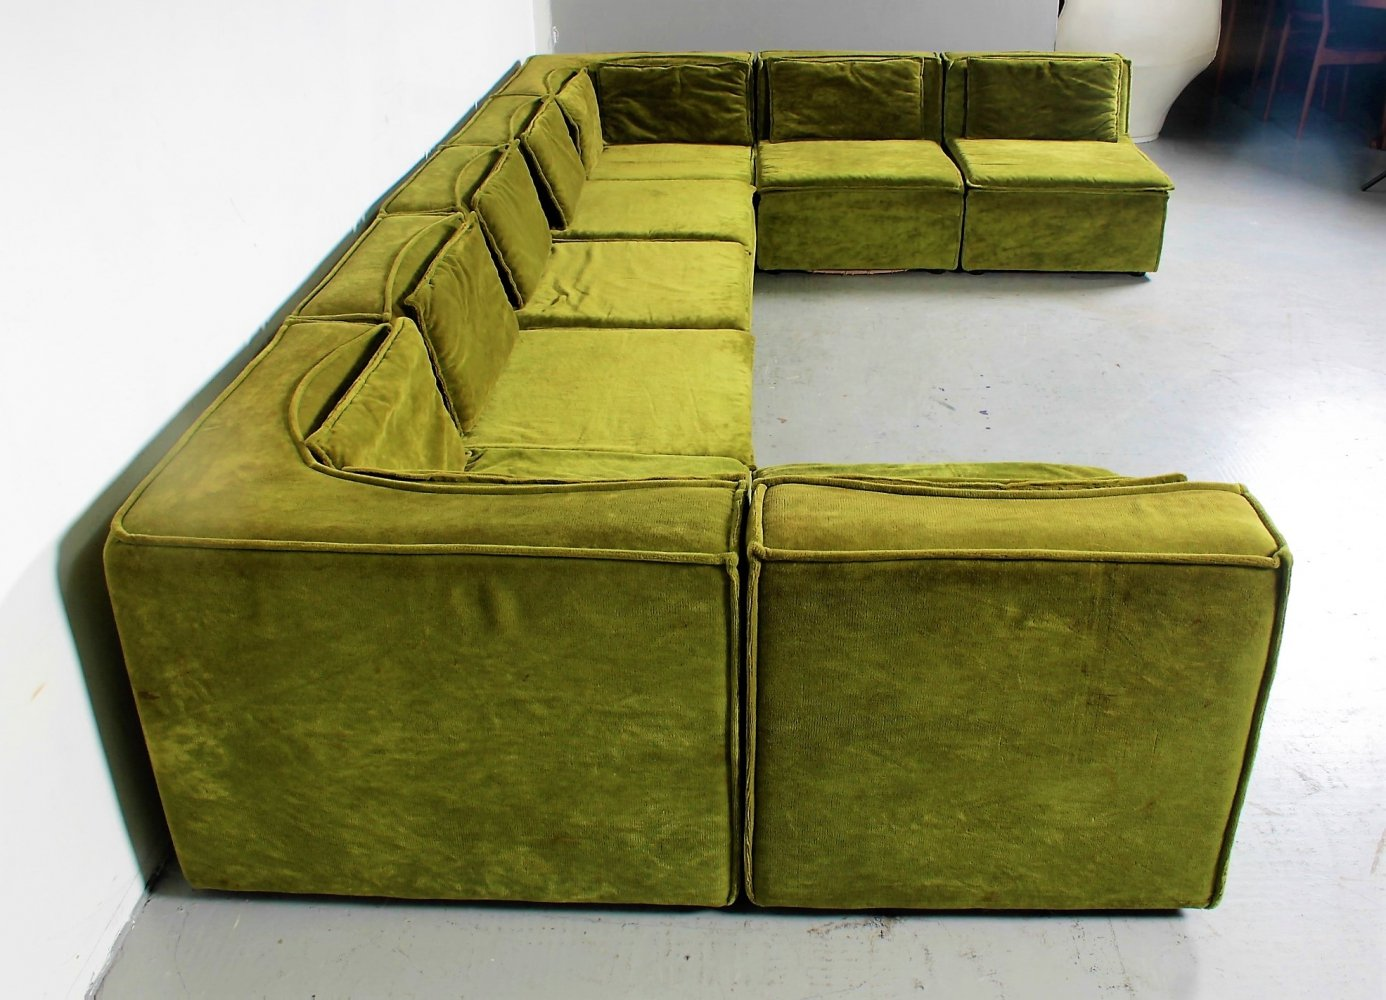 Giant 8 piece sectional sofa in green velvet with additional cushions